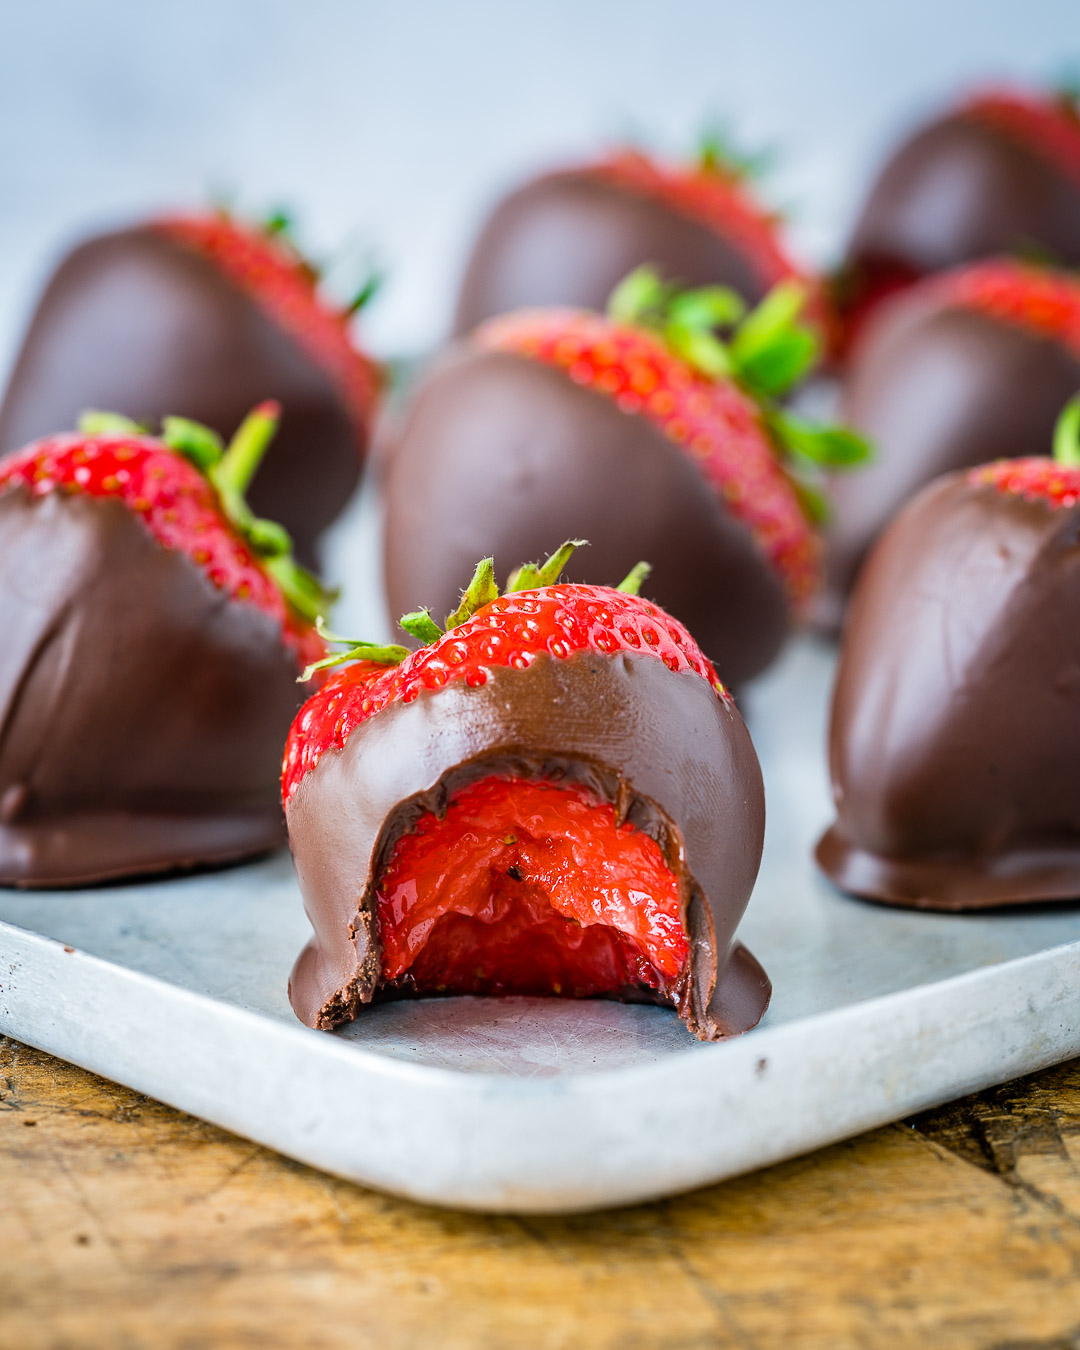 How To make Chocolate Covered Strawberries 8